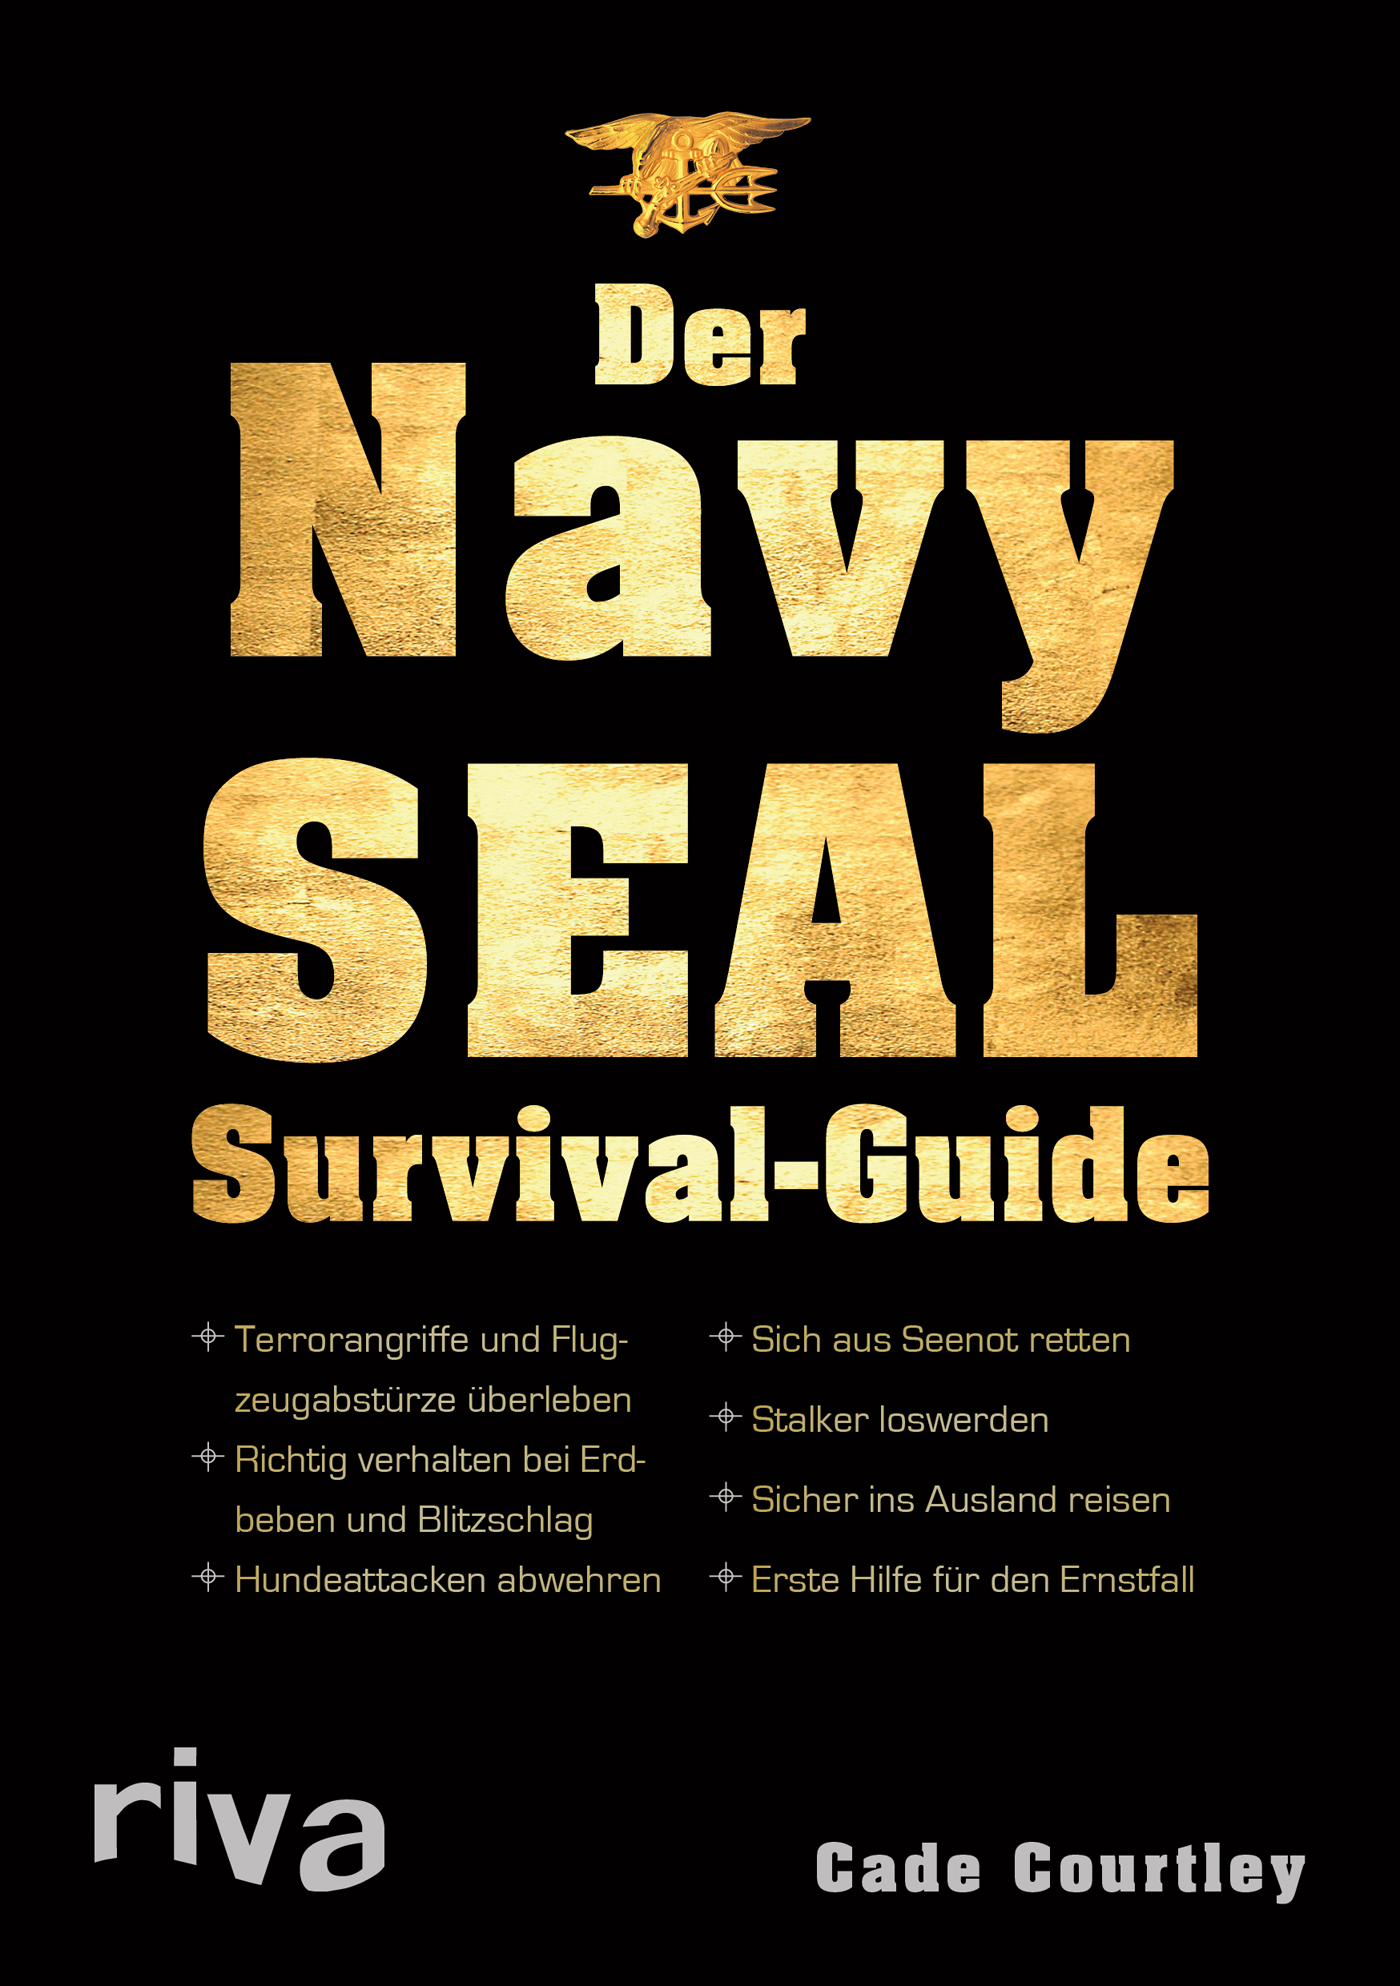 Cade Courtley - Der Navy-Seal-Survival-Guide